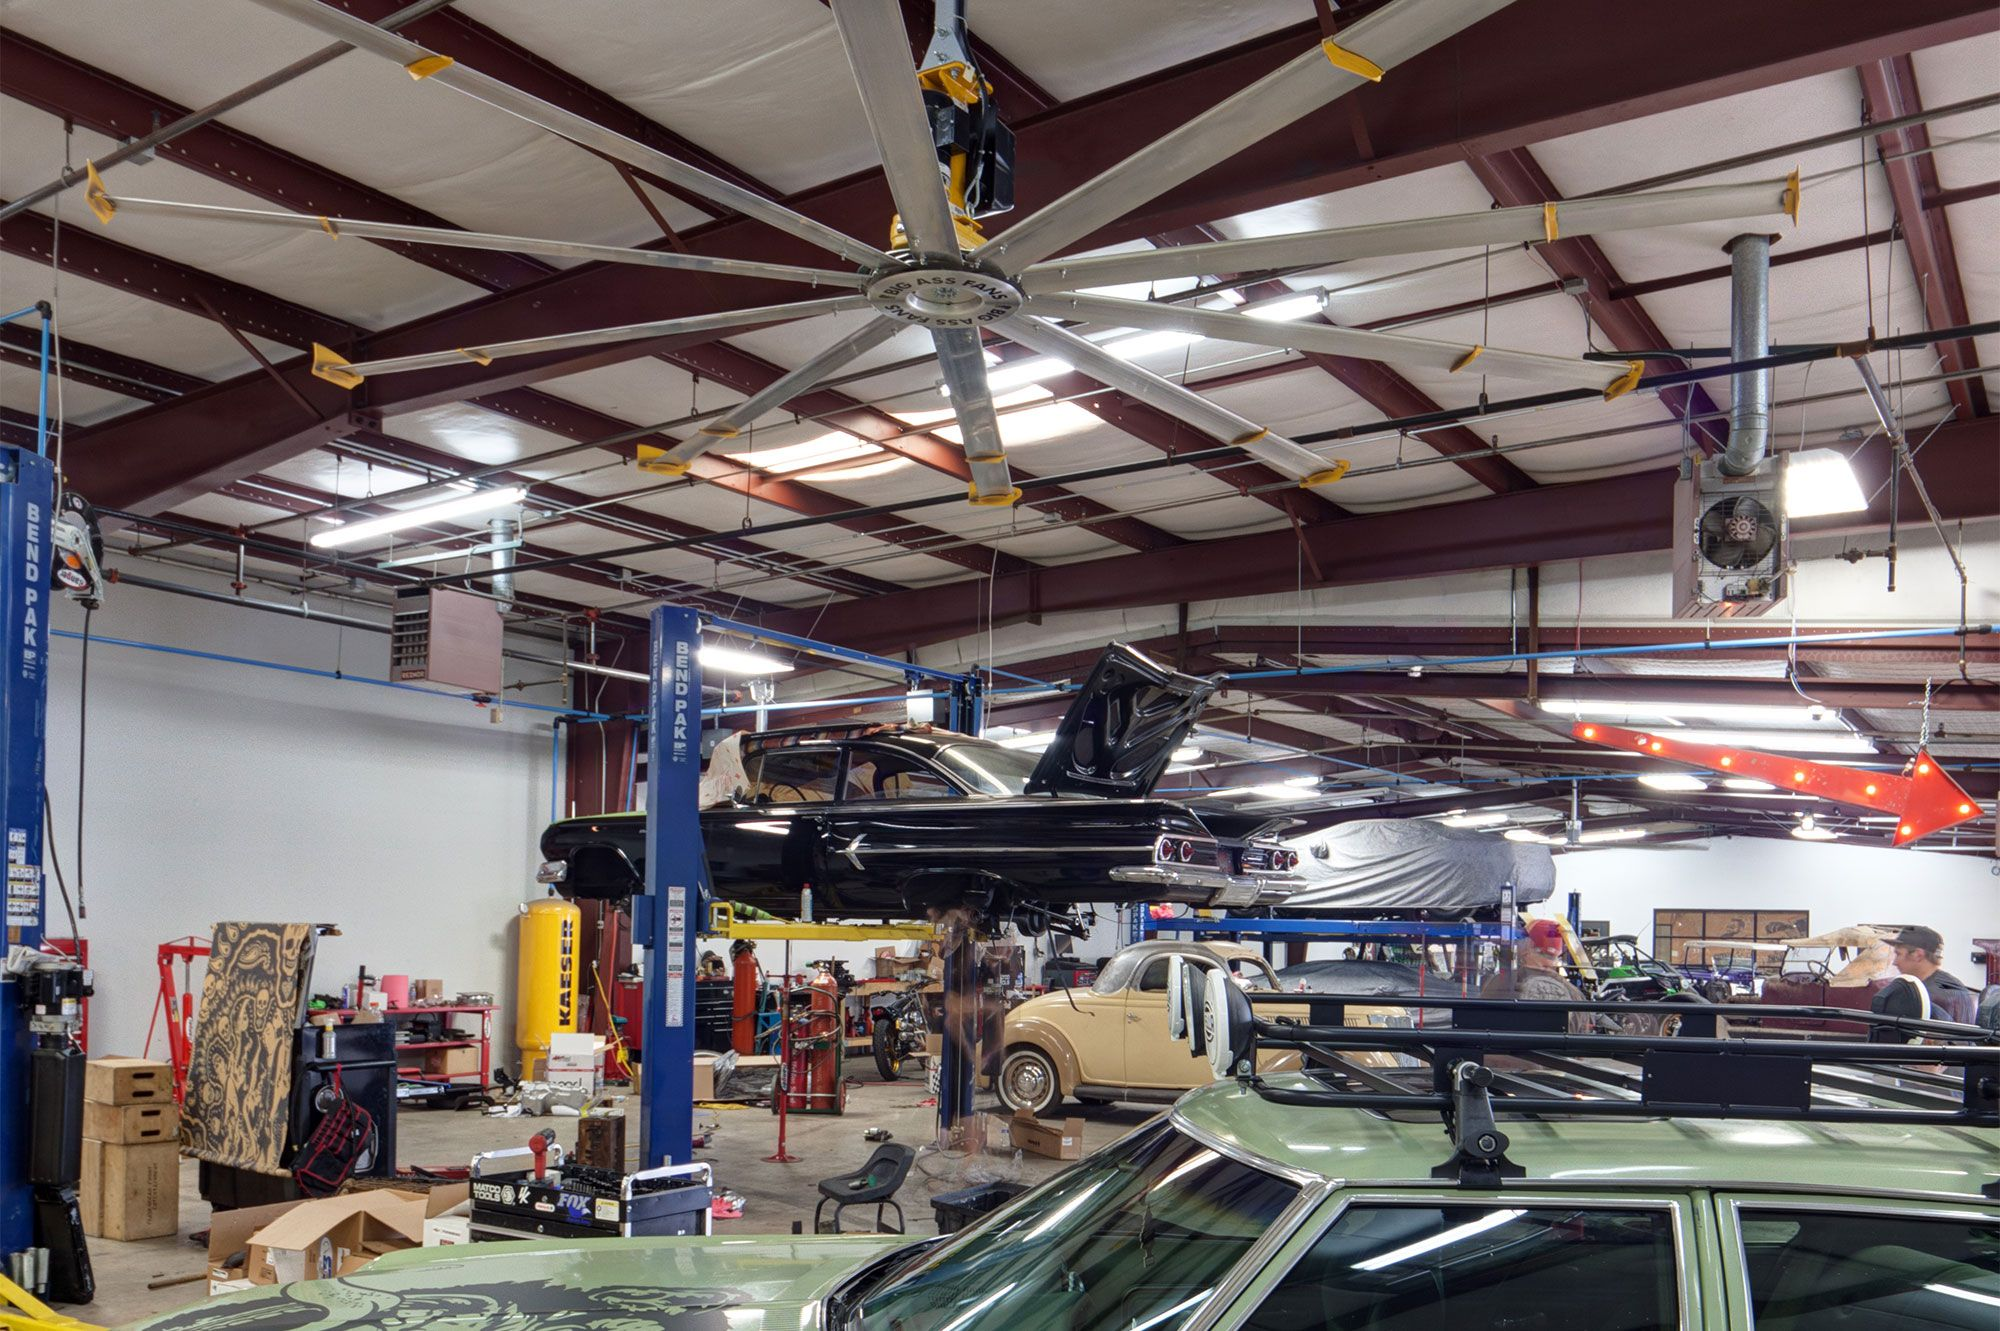 Gas Monkey Garage Uses Large Portable Fans Ceiling Fans By Big